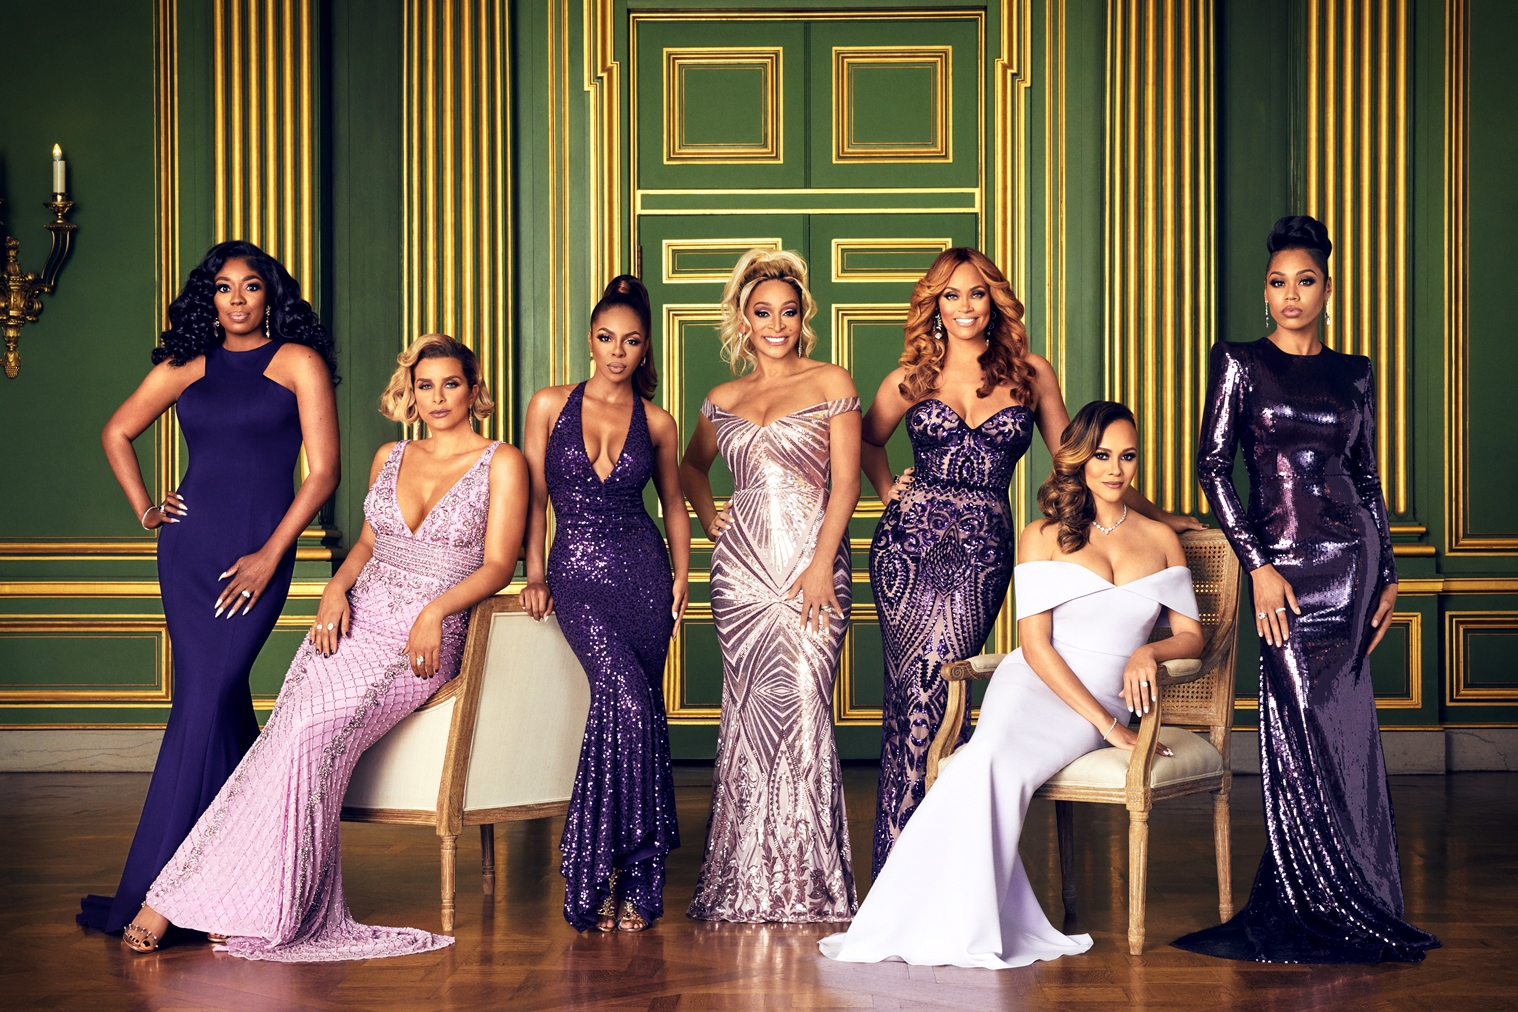 """""""real-housewives-of-potomac-season-five-trailer-released-gizelle-and-jamal-bryant-reunion-michael-darby-scandal-and-monique-samuels-and-candiace-dillard-feud-all-addressed"""""""